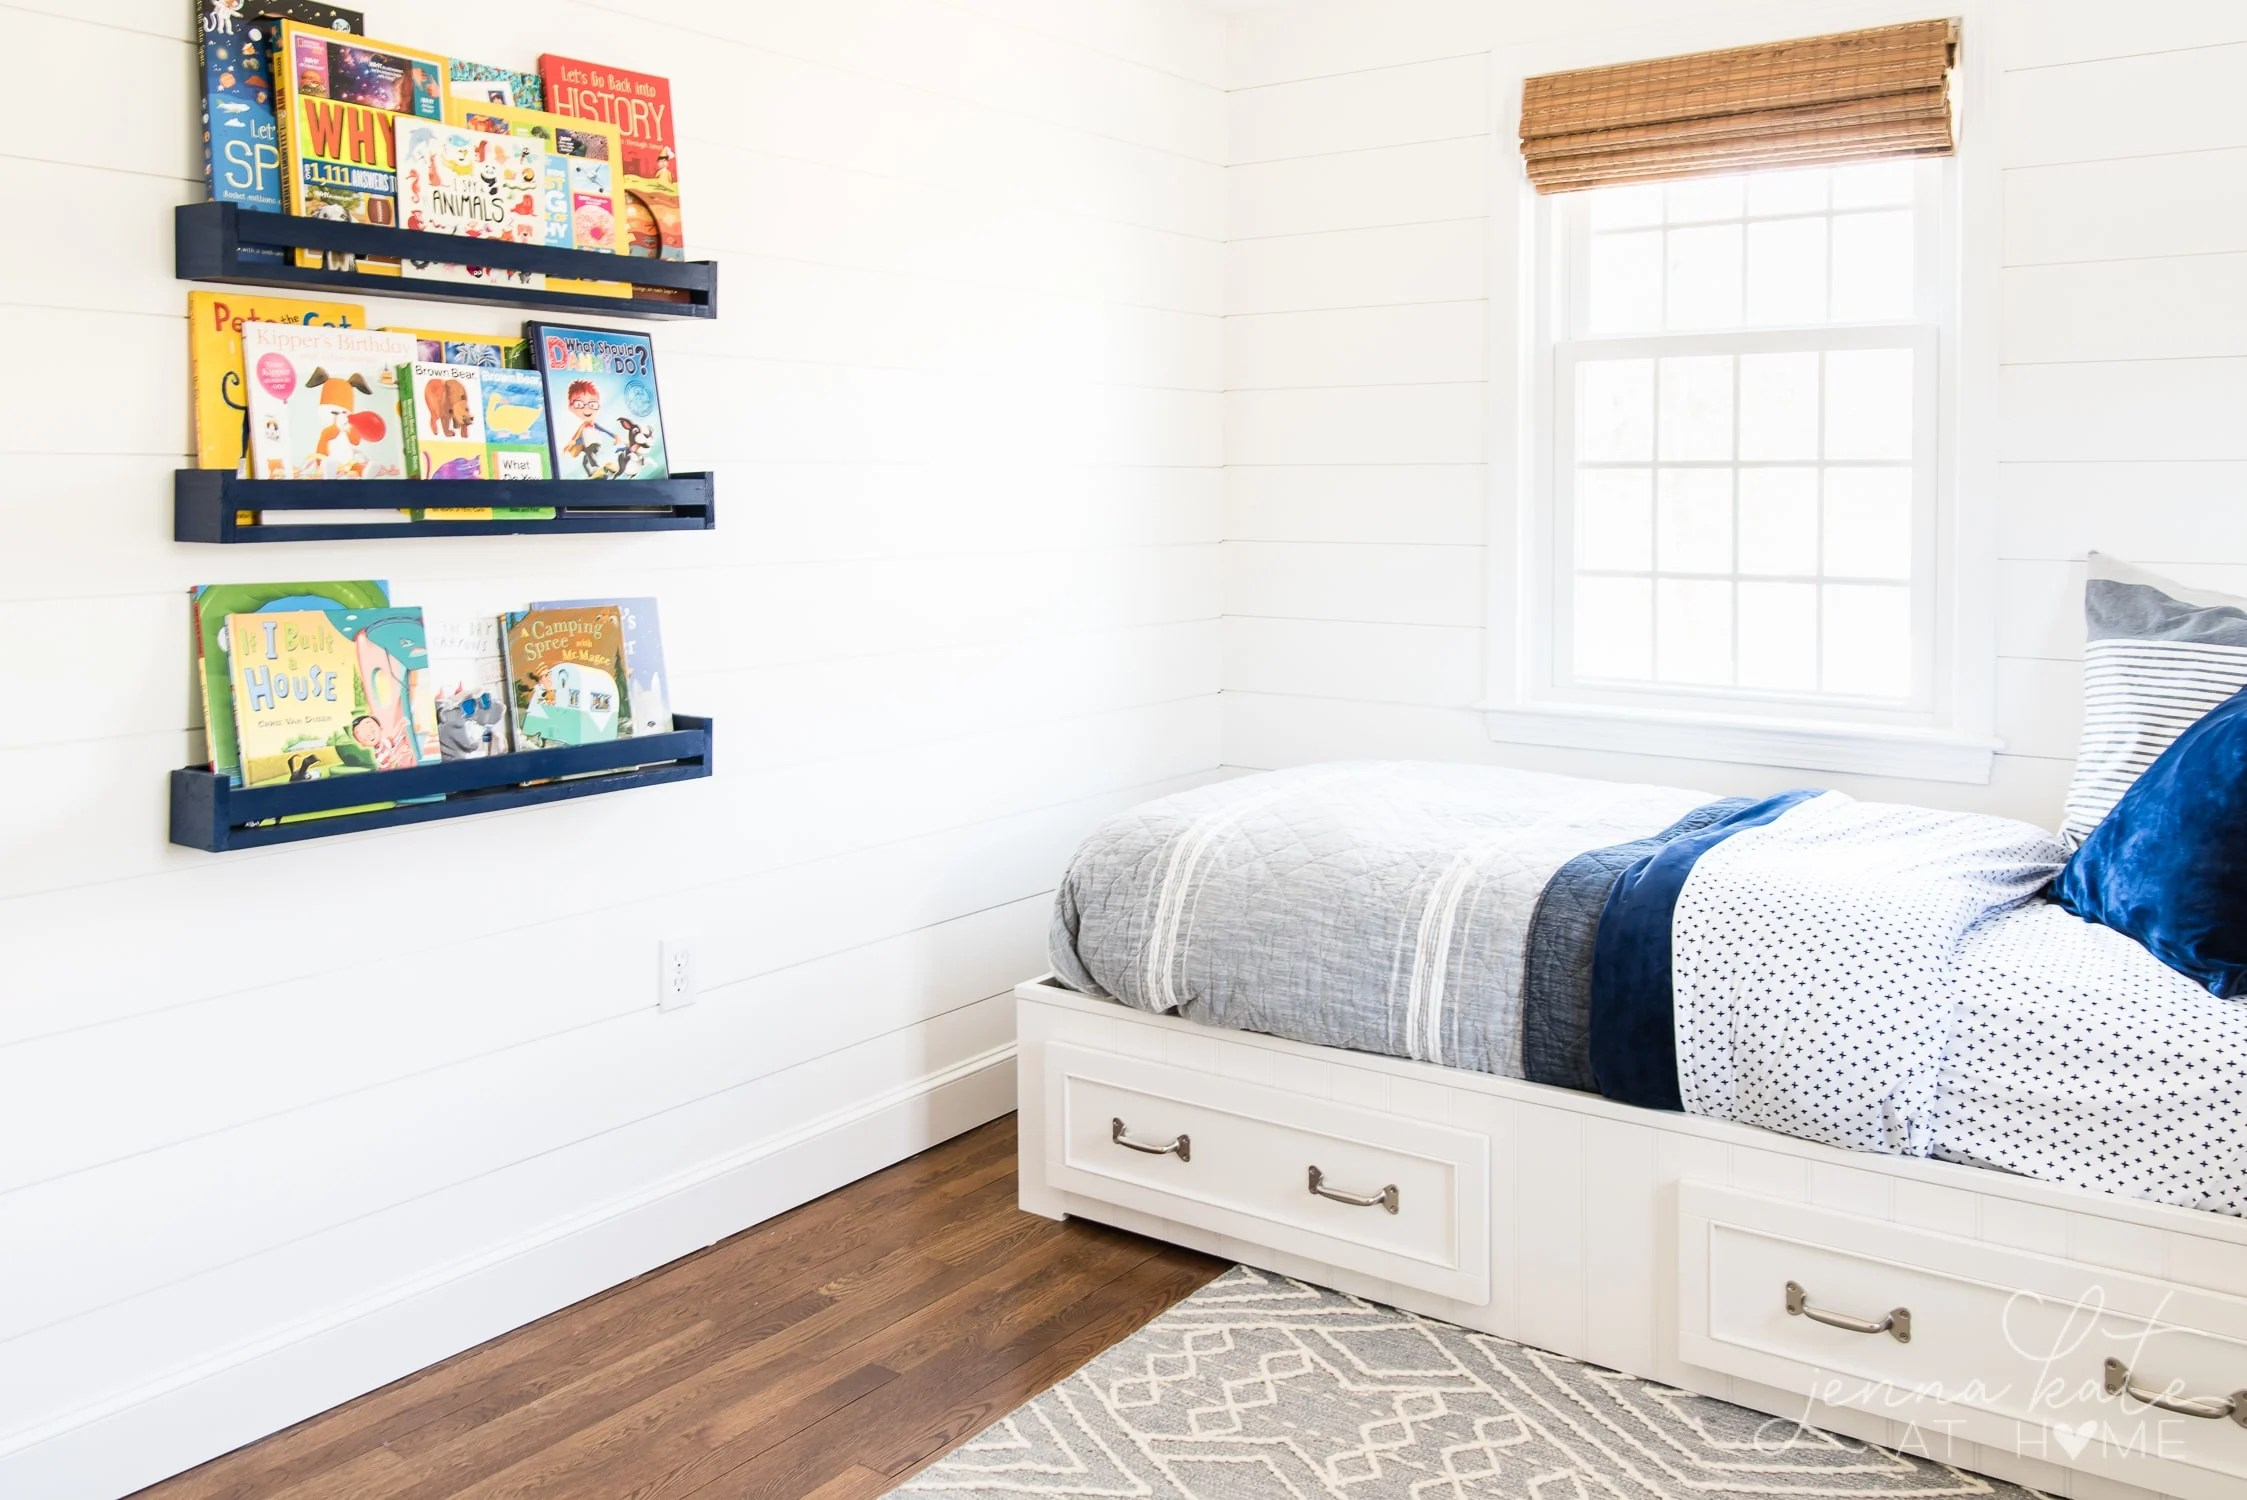 Pottery Barn Kids Belden Bed with shiplap walls, bamboo shades, book ledges on the wall and patterned boy bedding. Perfect for a shared boy bedroom.